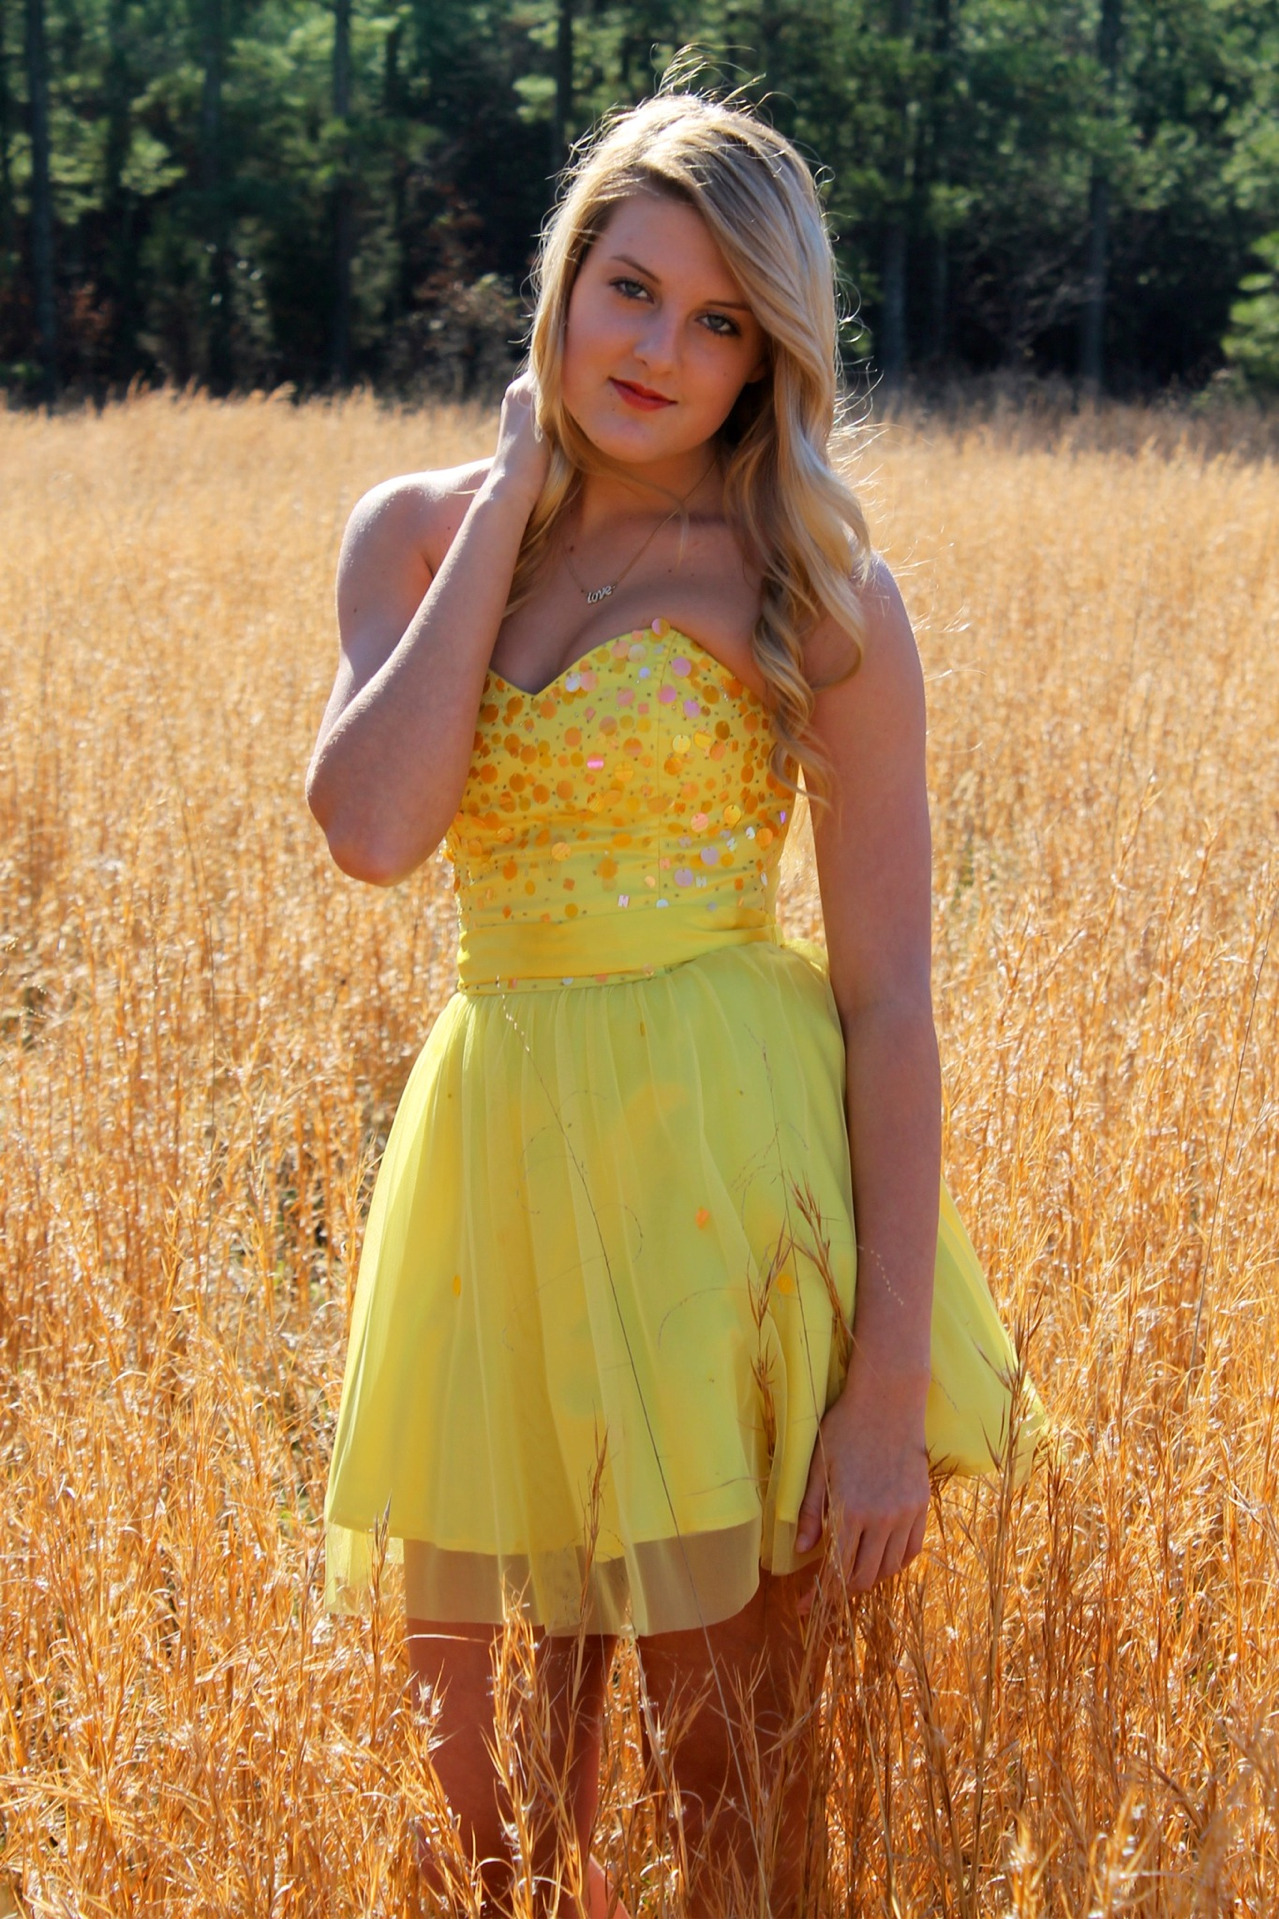 #yellow #dress #tumblr #girl #field #randomhashtags #photography